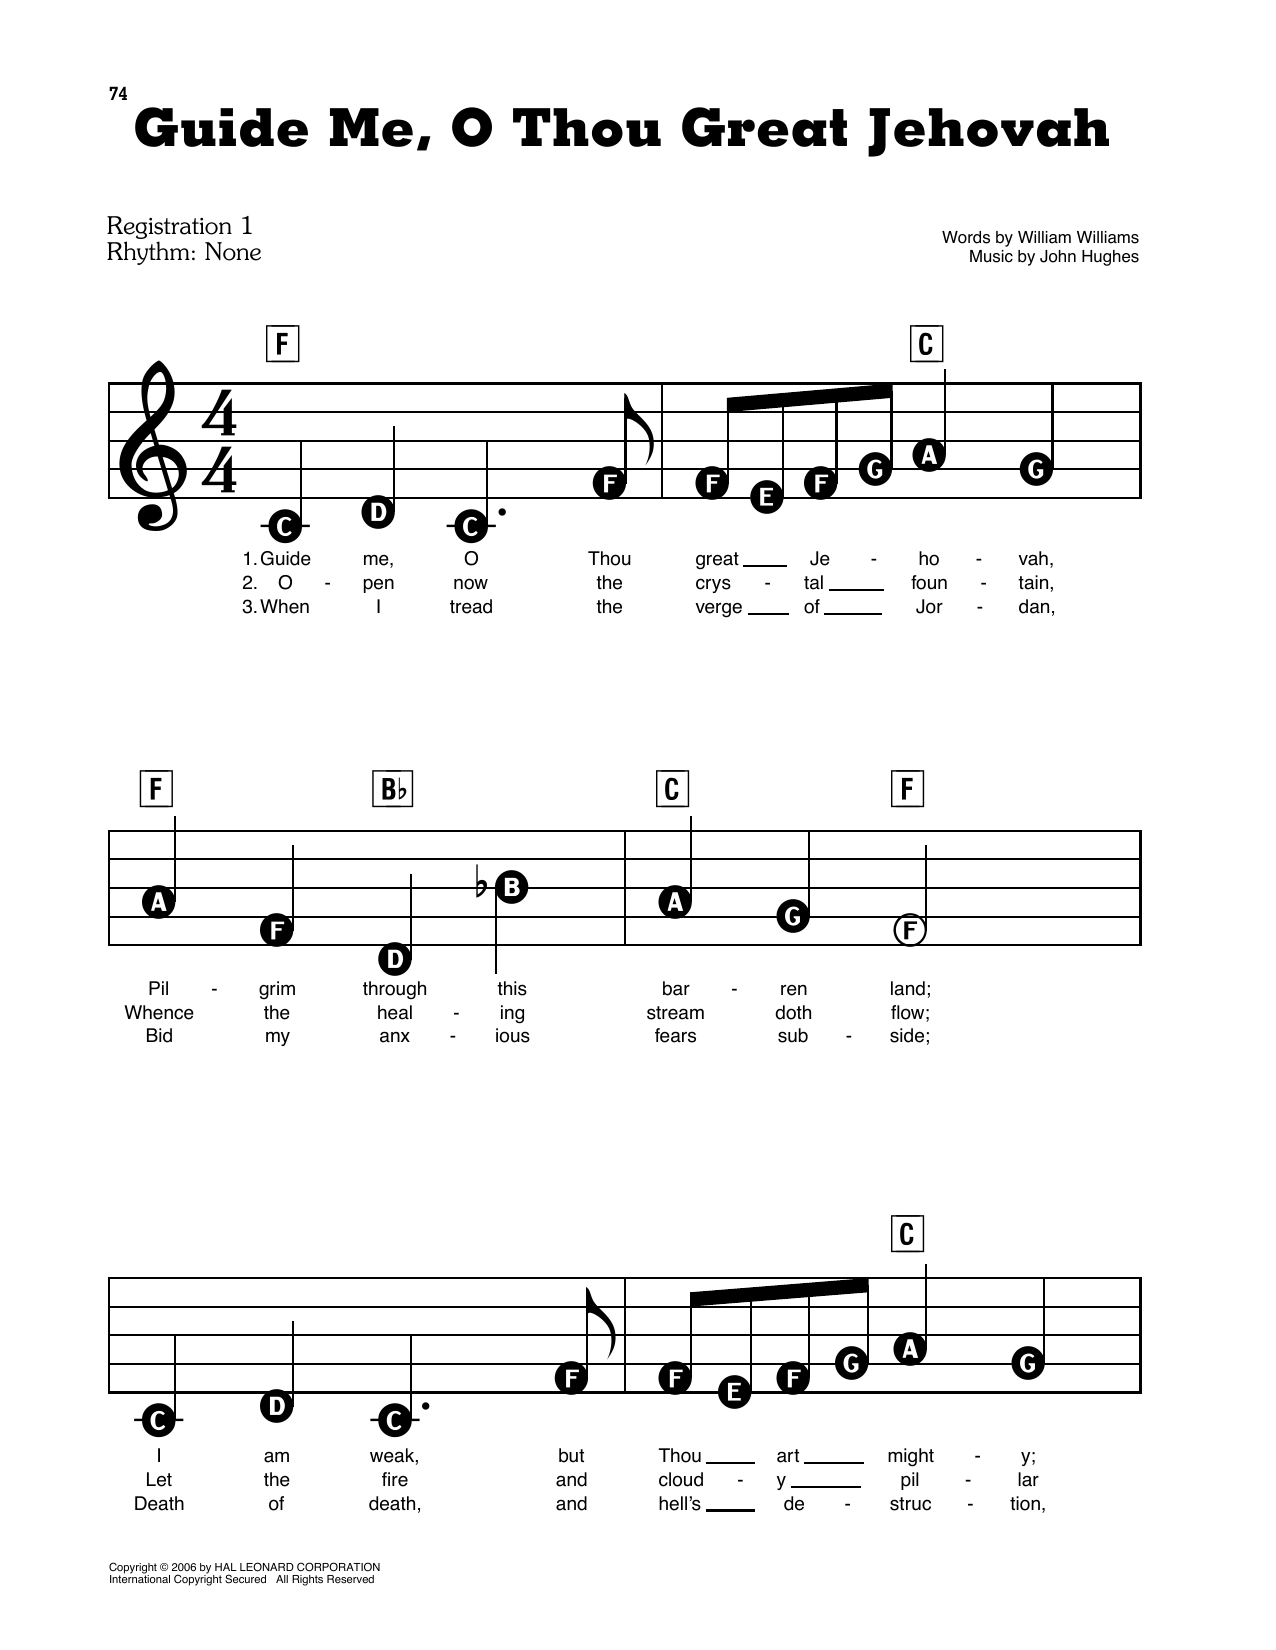 Guide Me, O Thou Great Jehovah Sheet Music